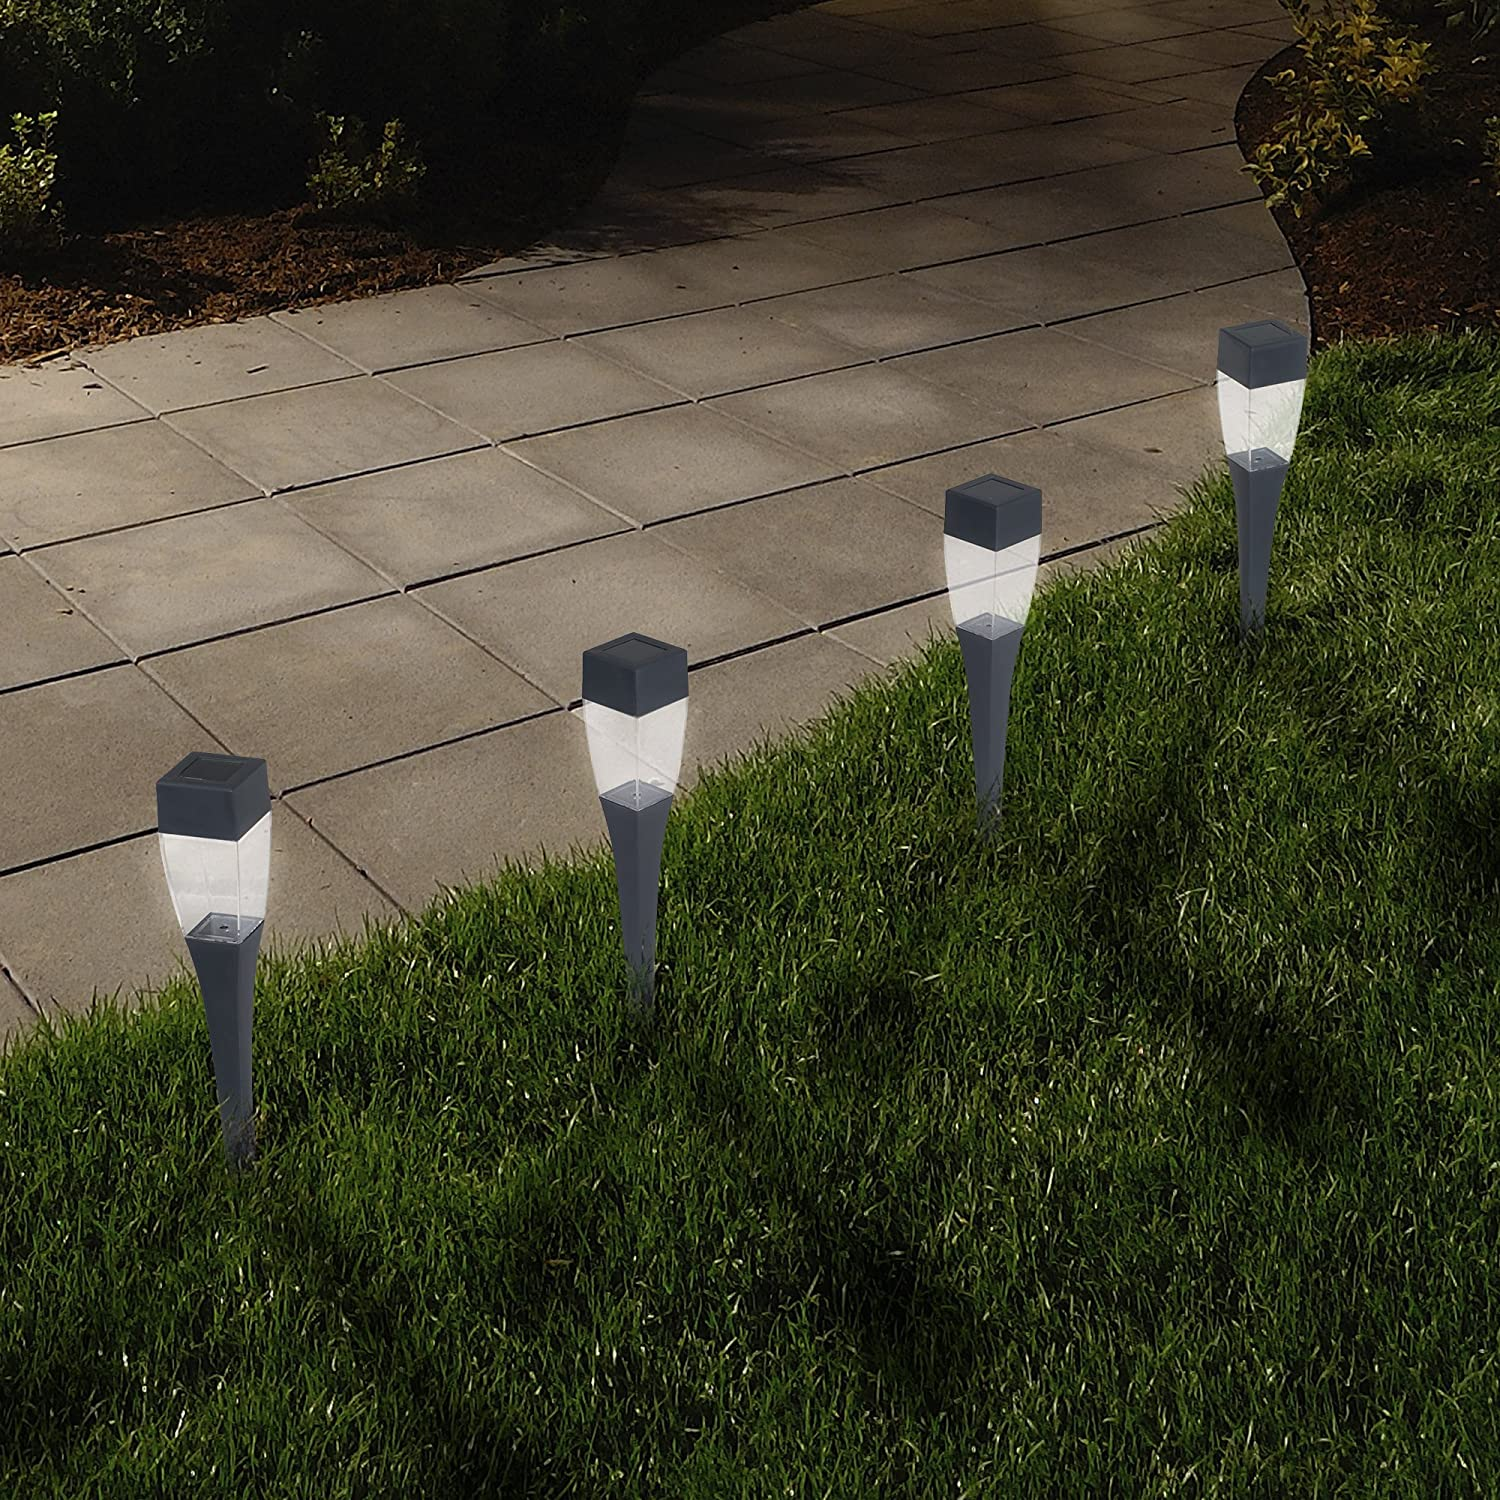 Solar Powered Lights (Set of 24)- LED Outdoor Stake Spotlight Fixture for Gardens, Pathways, and Patios by Pure Garden